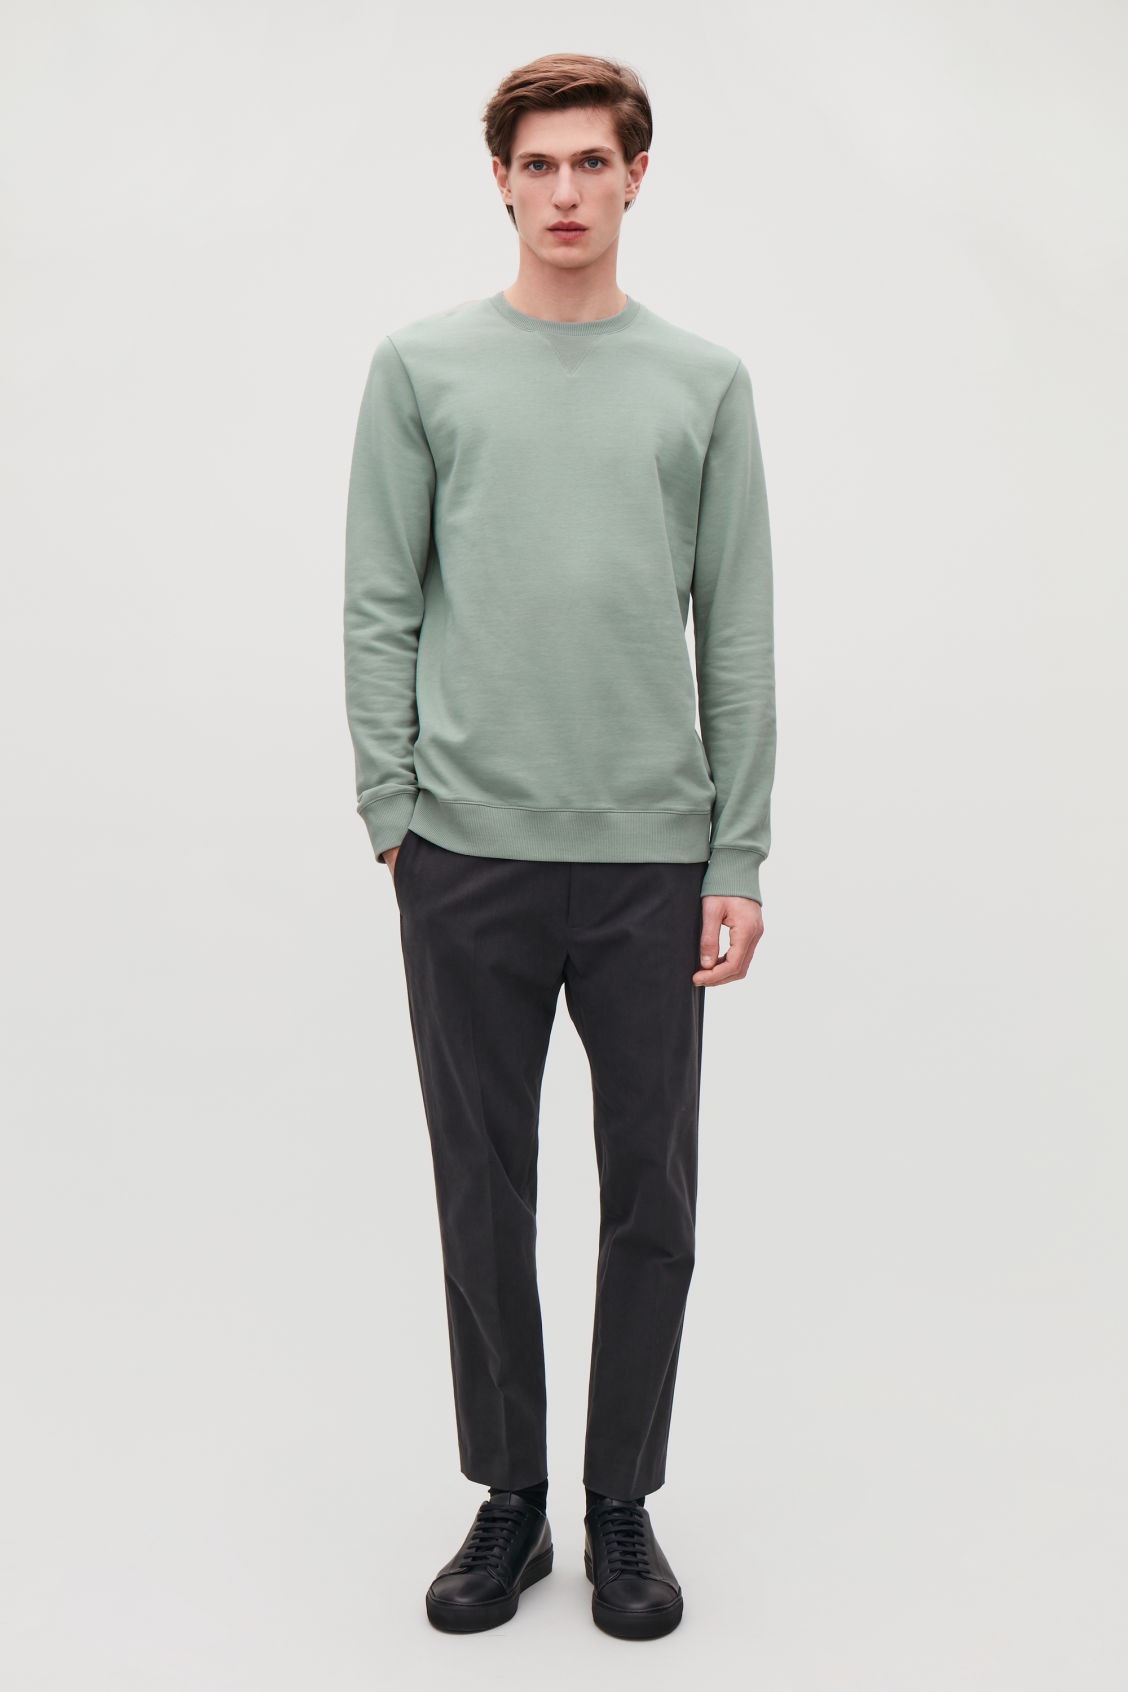 Detailed image of Cos brushed cotton sweatshirt in green